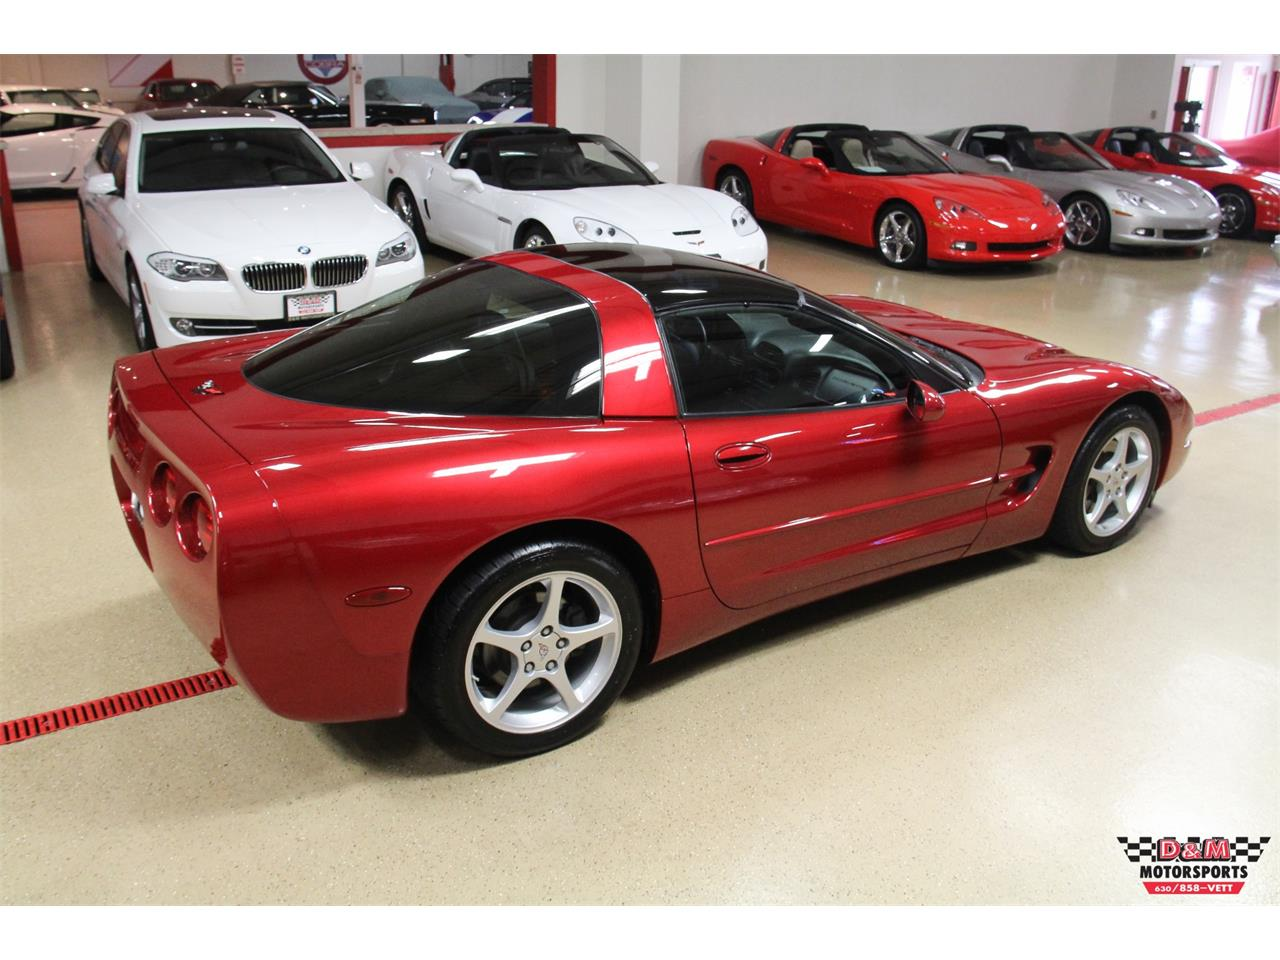 Large Picture of 2000 Corvette located in Illinois Offered by D & M Motorsports - LVA3